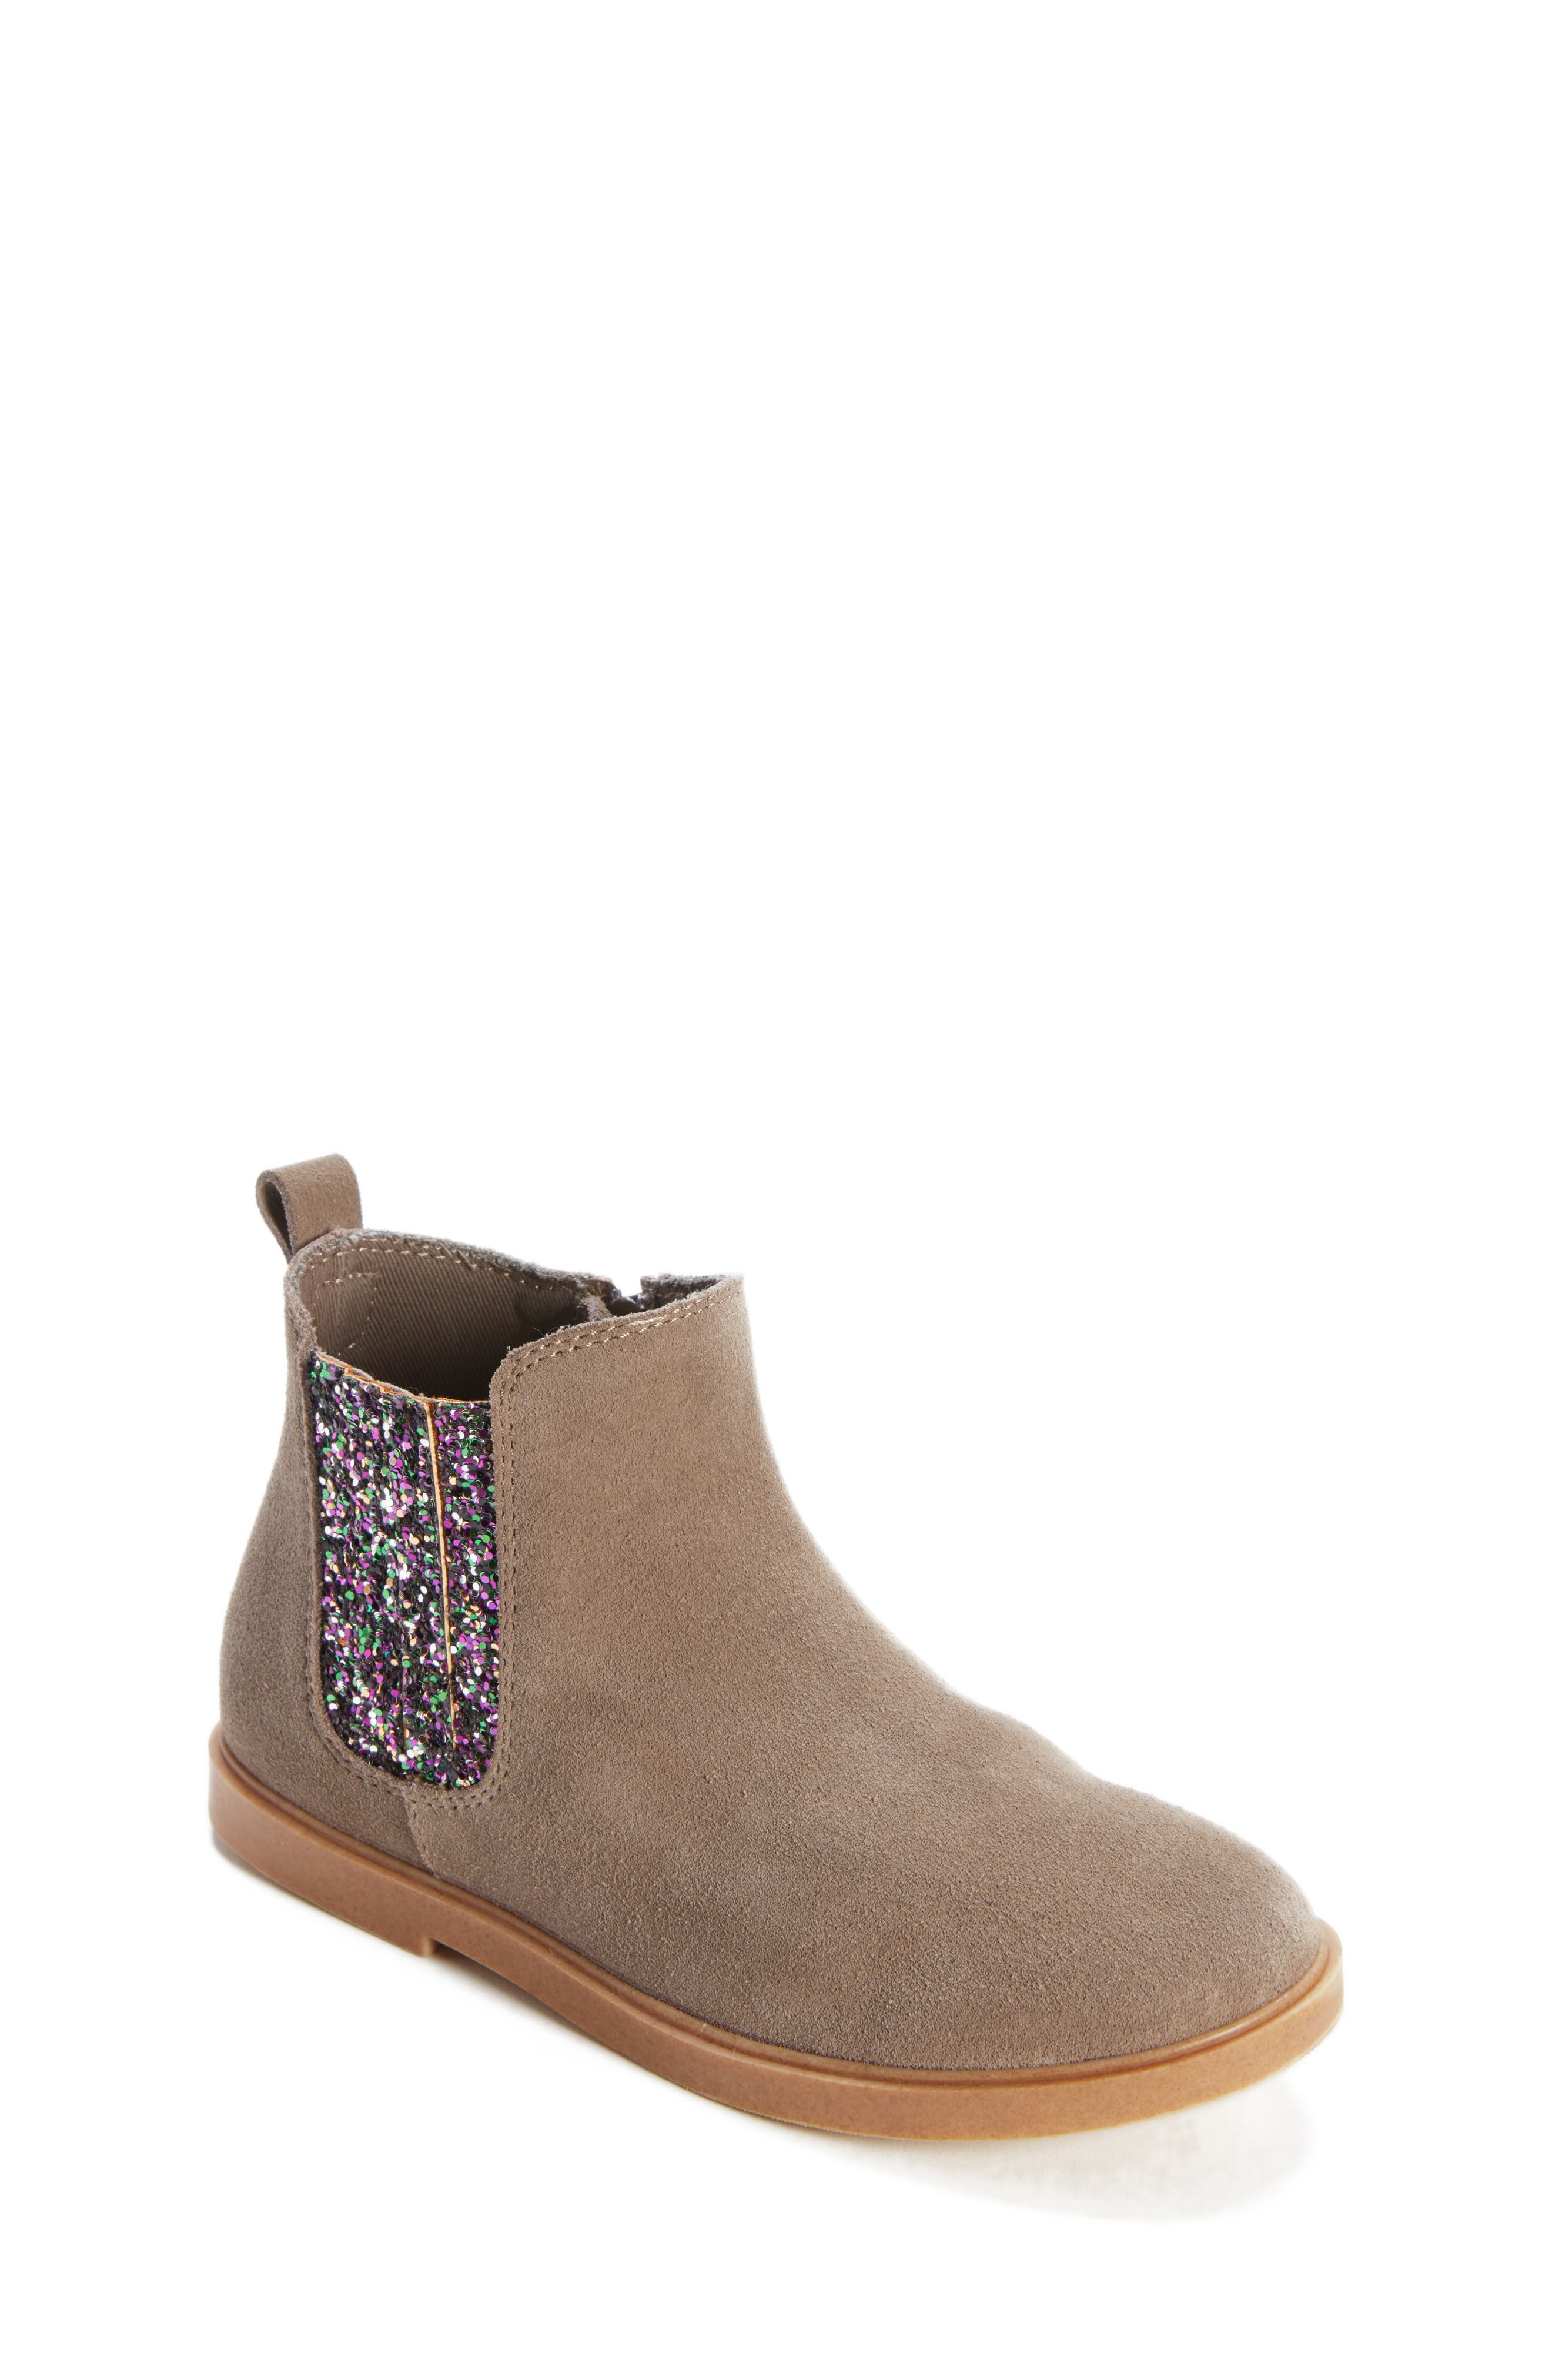 Alice Glitter Chelsea Boot,                             Main thumbnail 1, color,                             GREY SUEDE